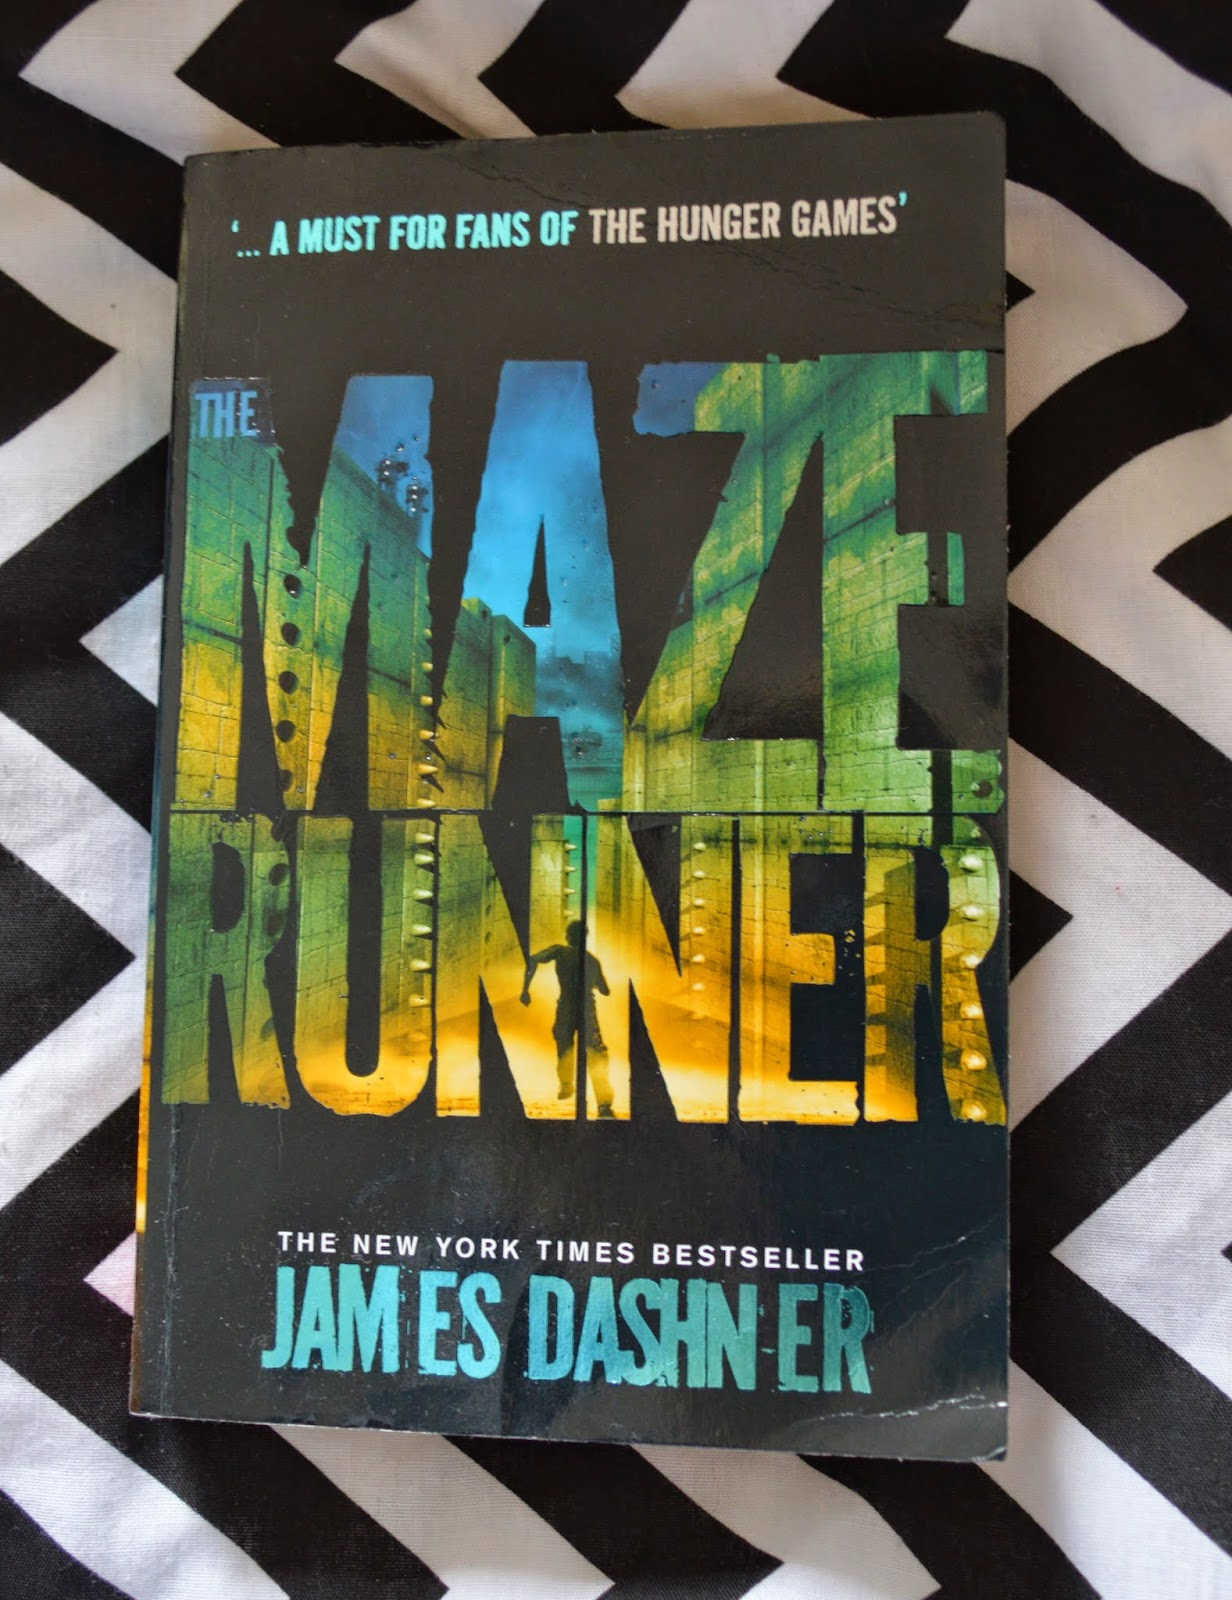 The Maze Runner, UK edition, James Dashner, review, book review, blog, photo, plot synopsis